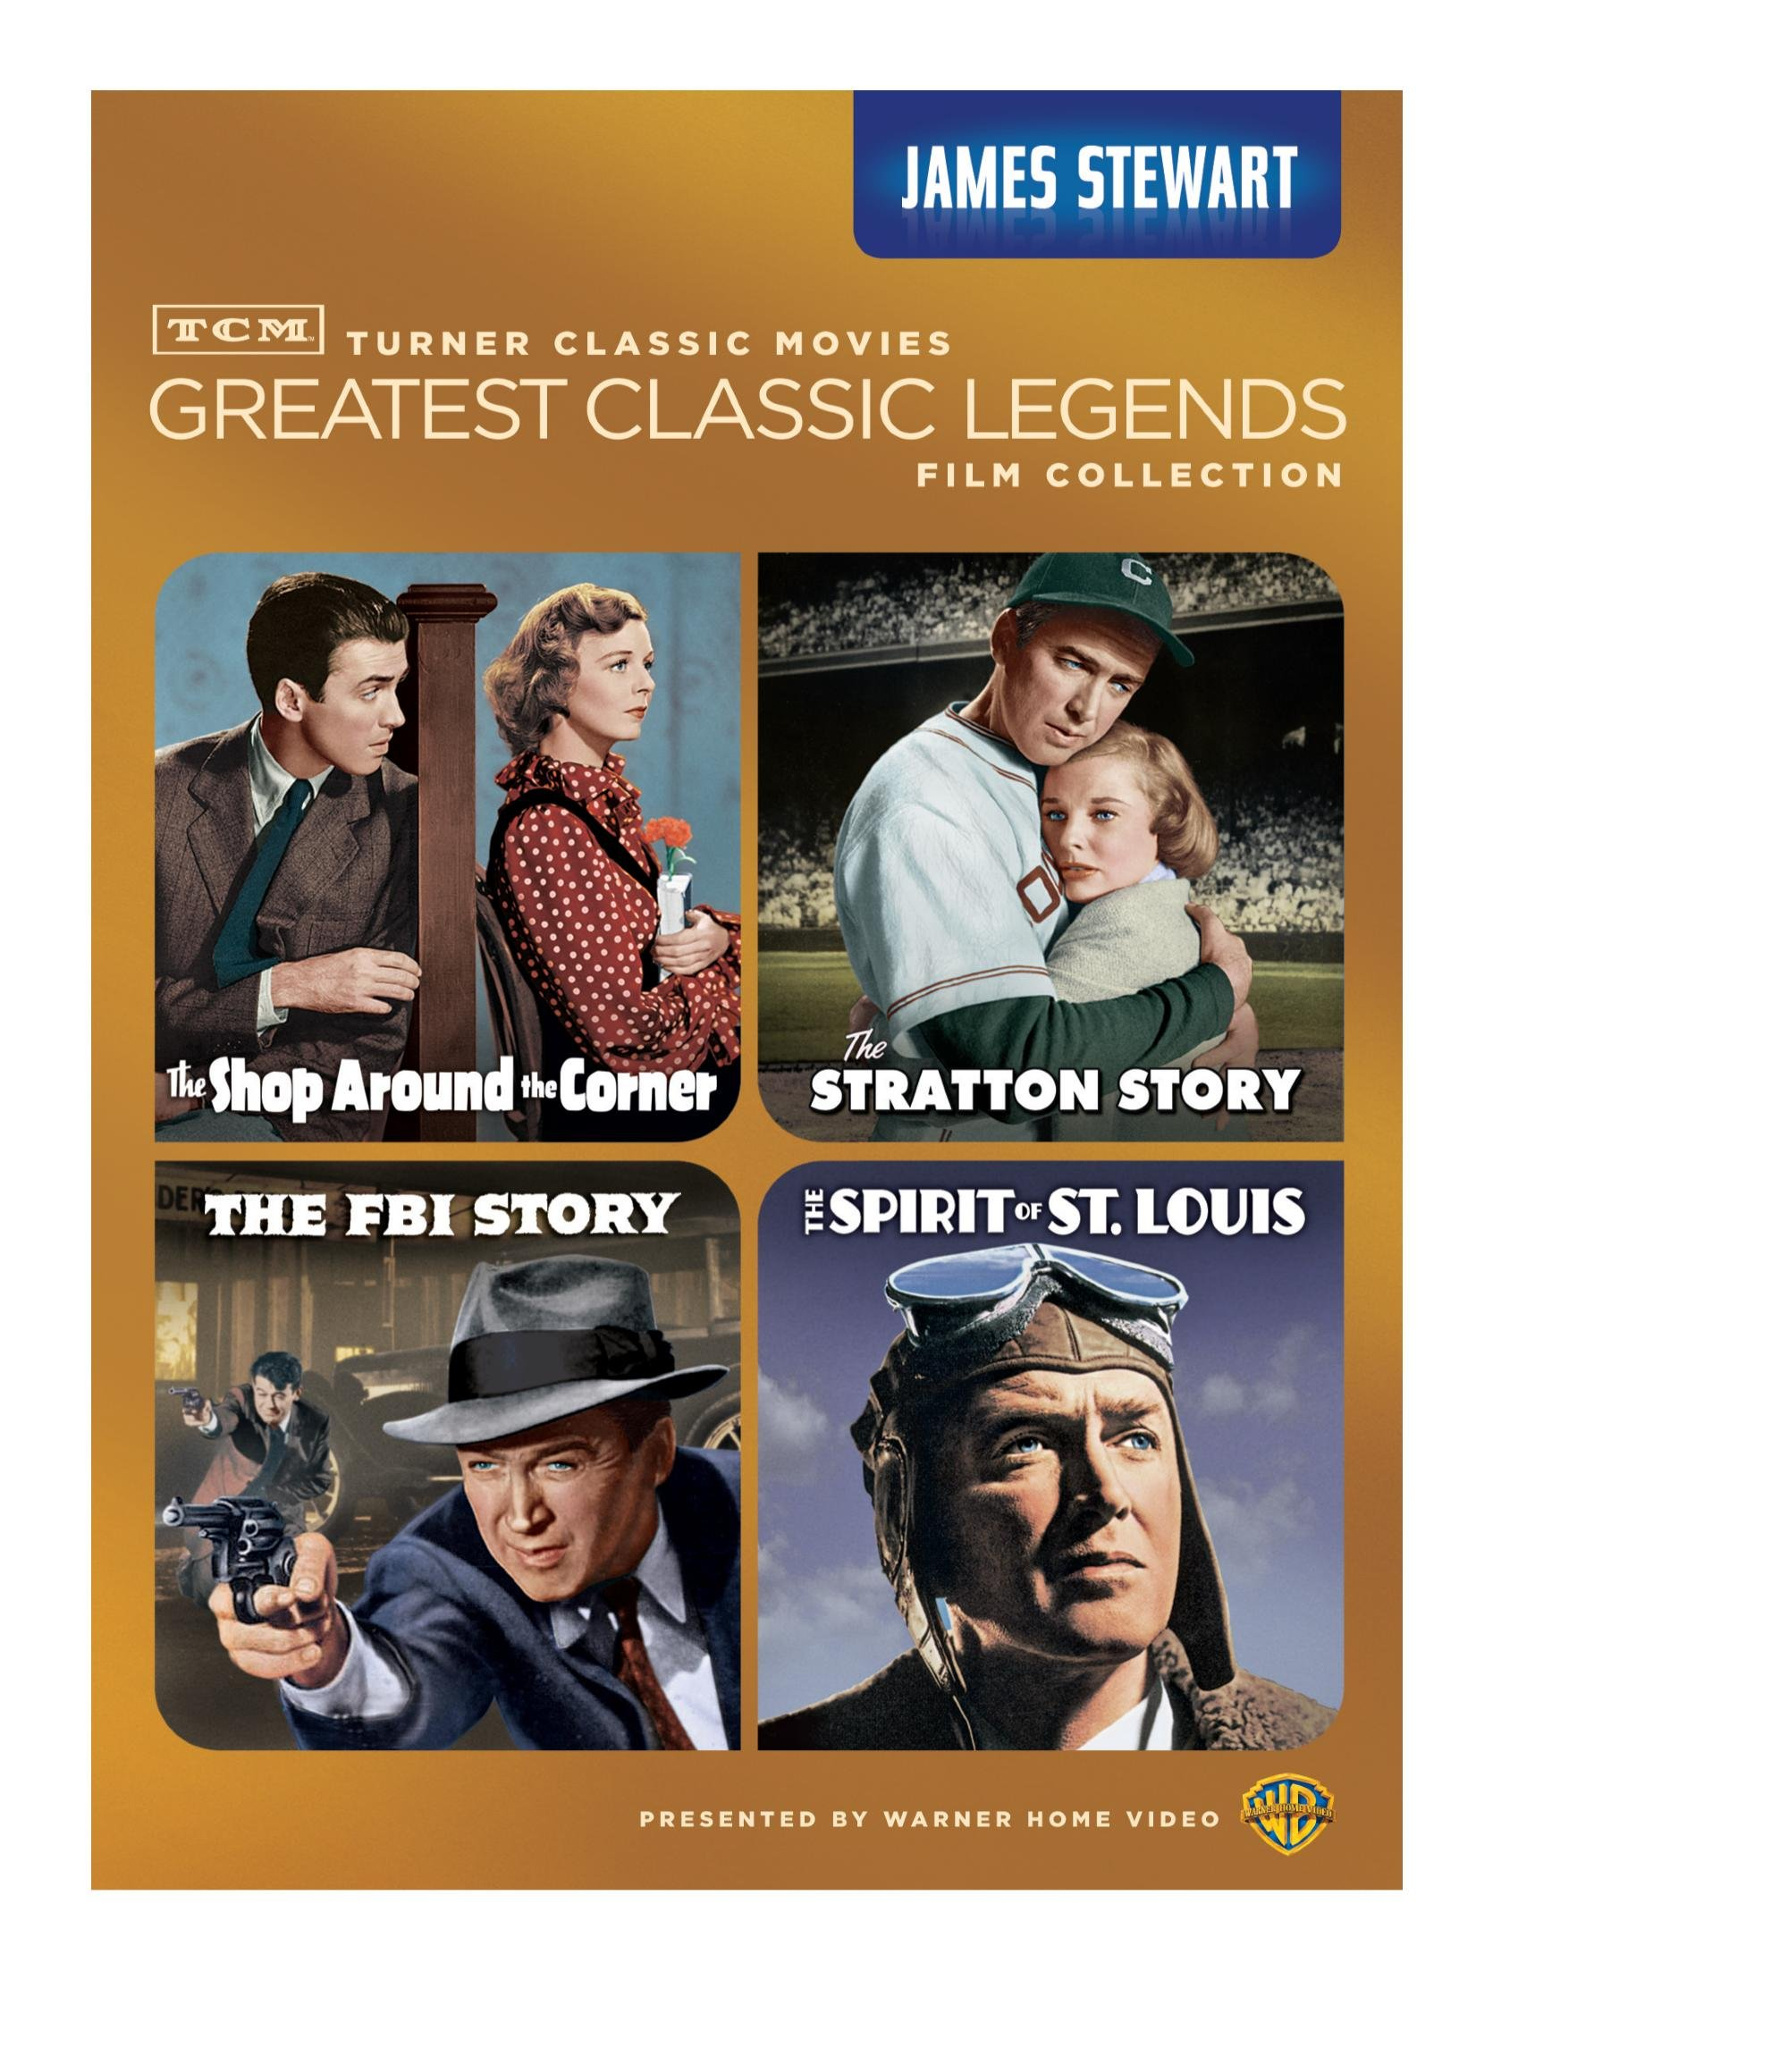 TCM Greatest Classic Legends: James Stewart (The Shop Around the Corner / The Stratton Story / The FBI Story / The Spirit of St. Louis) by Warner Home Video